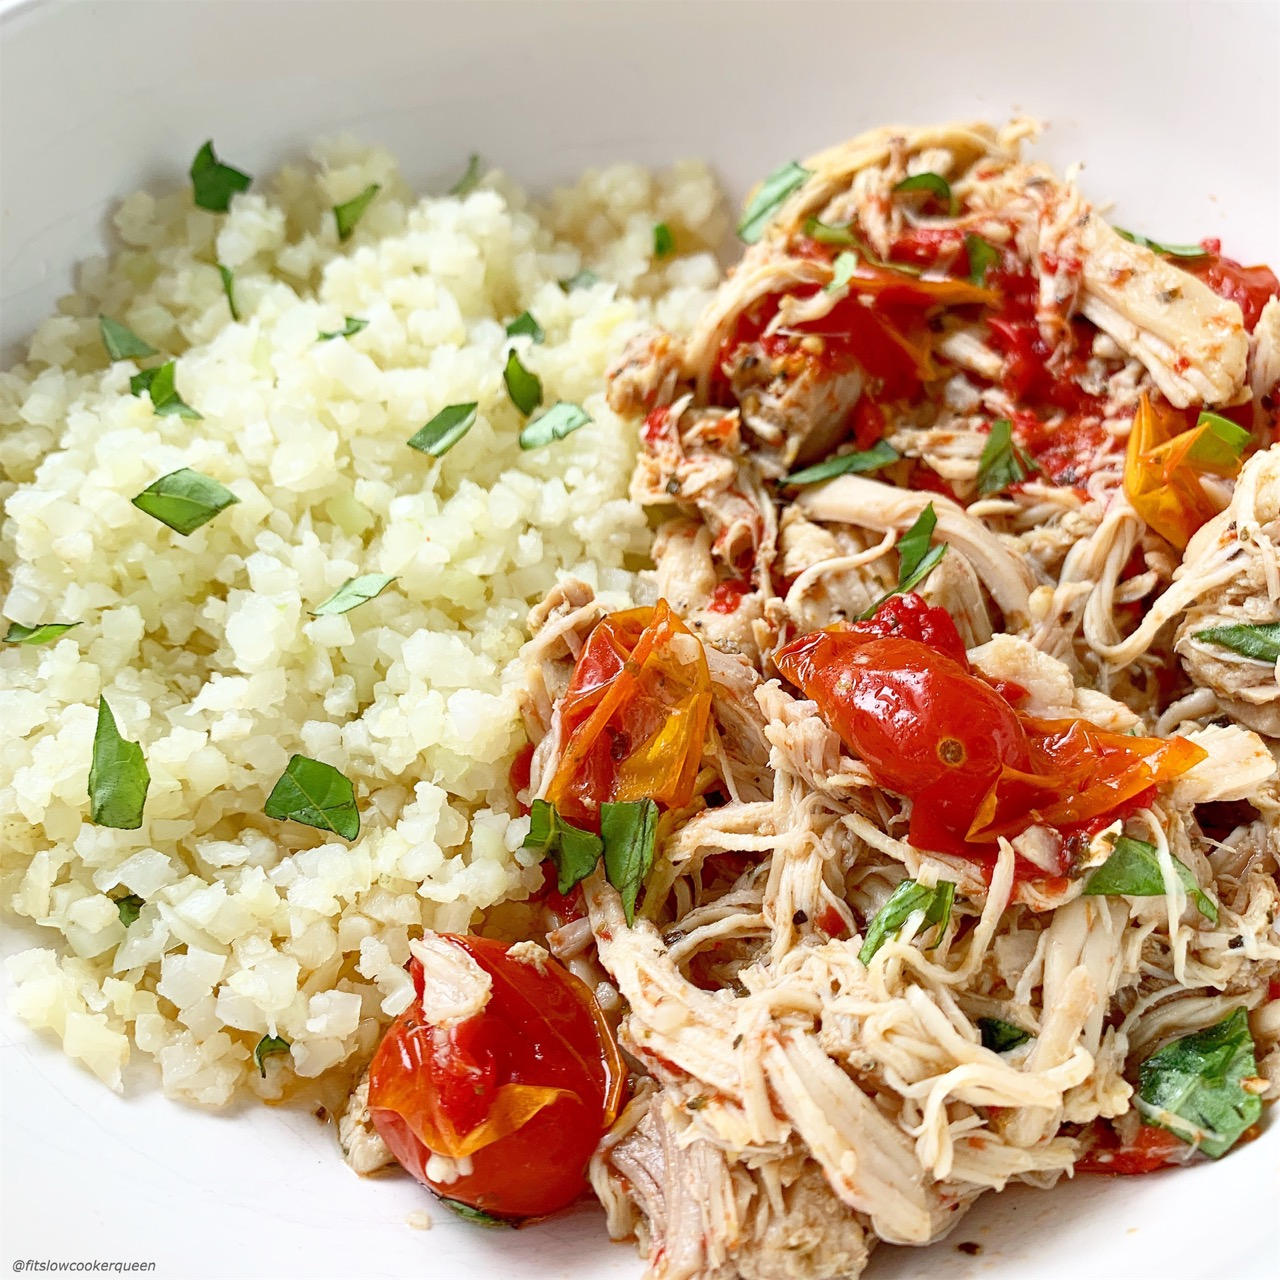 Chicken and a homemade tomato-garlic sauce cook together in this simple yet flavor healthy slow cooker or Instant Pot recipe.